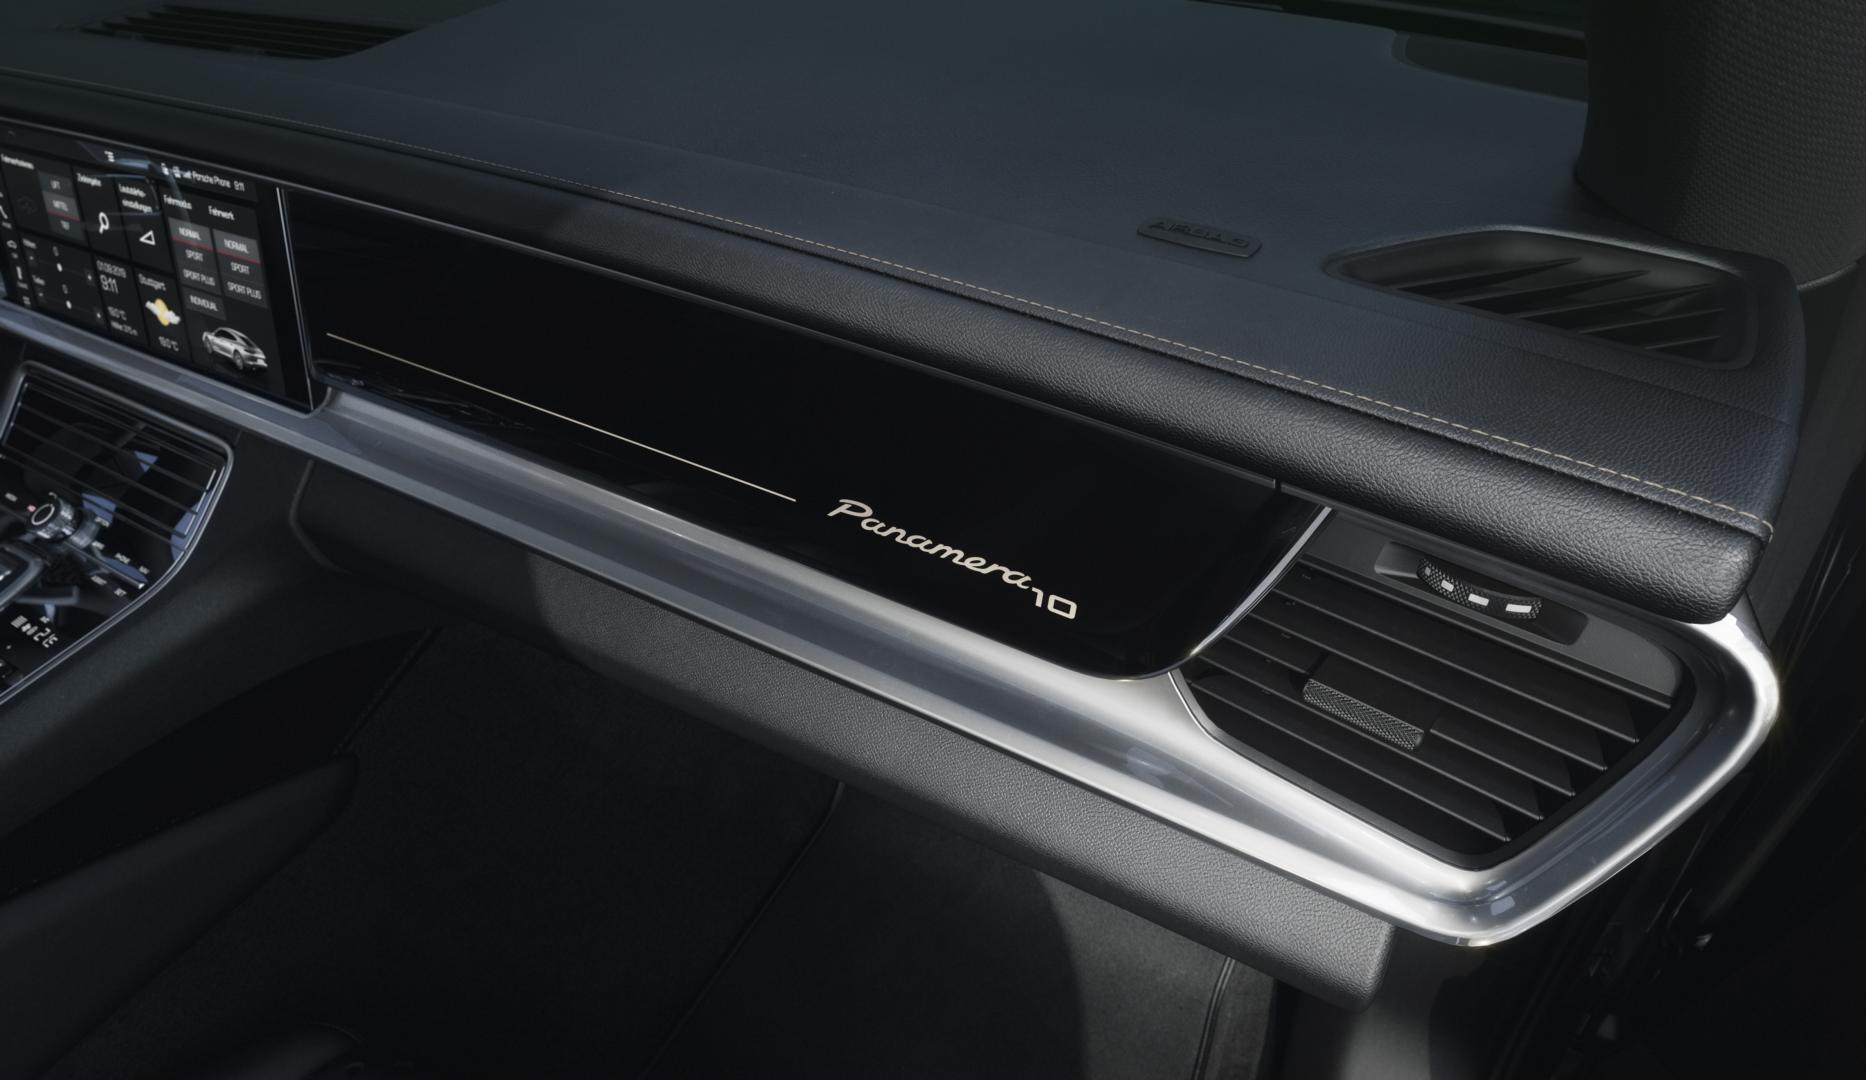 Porsche Panamera 10 Years Edition dashboard paneel